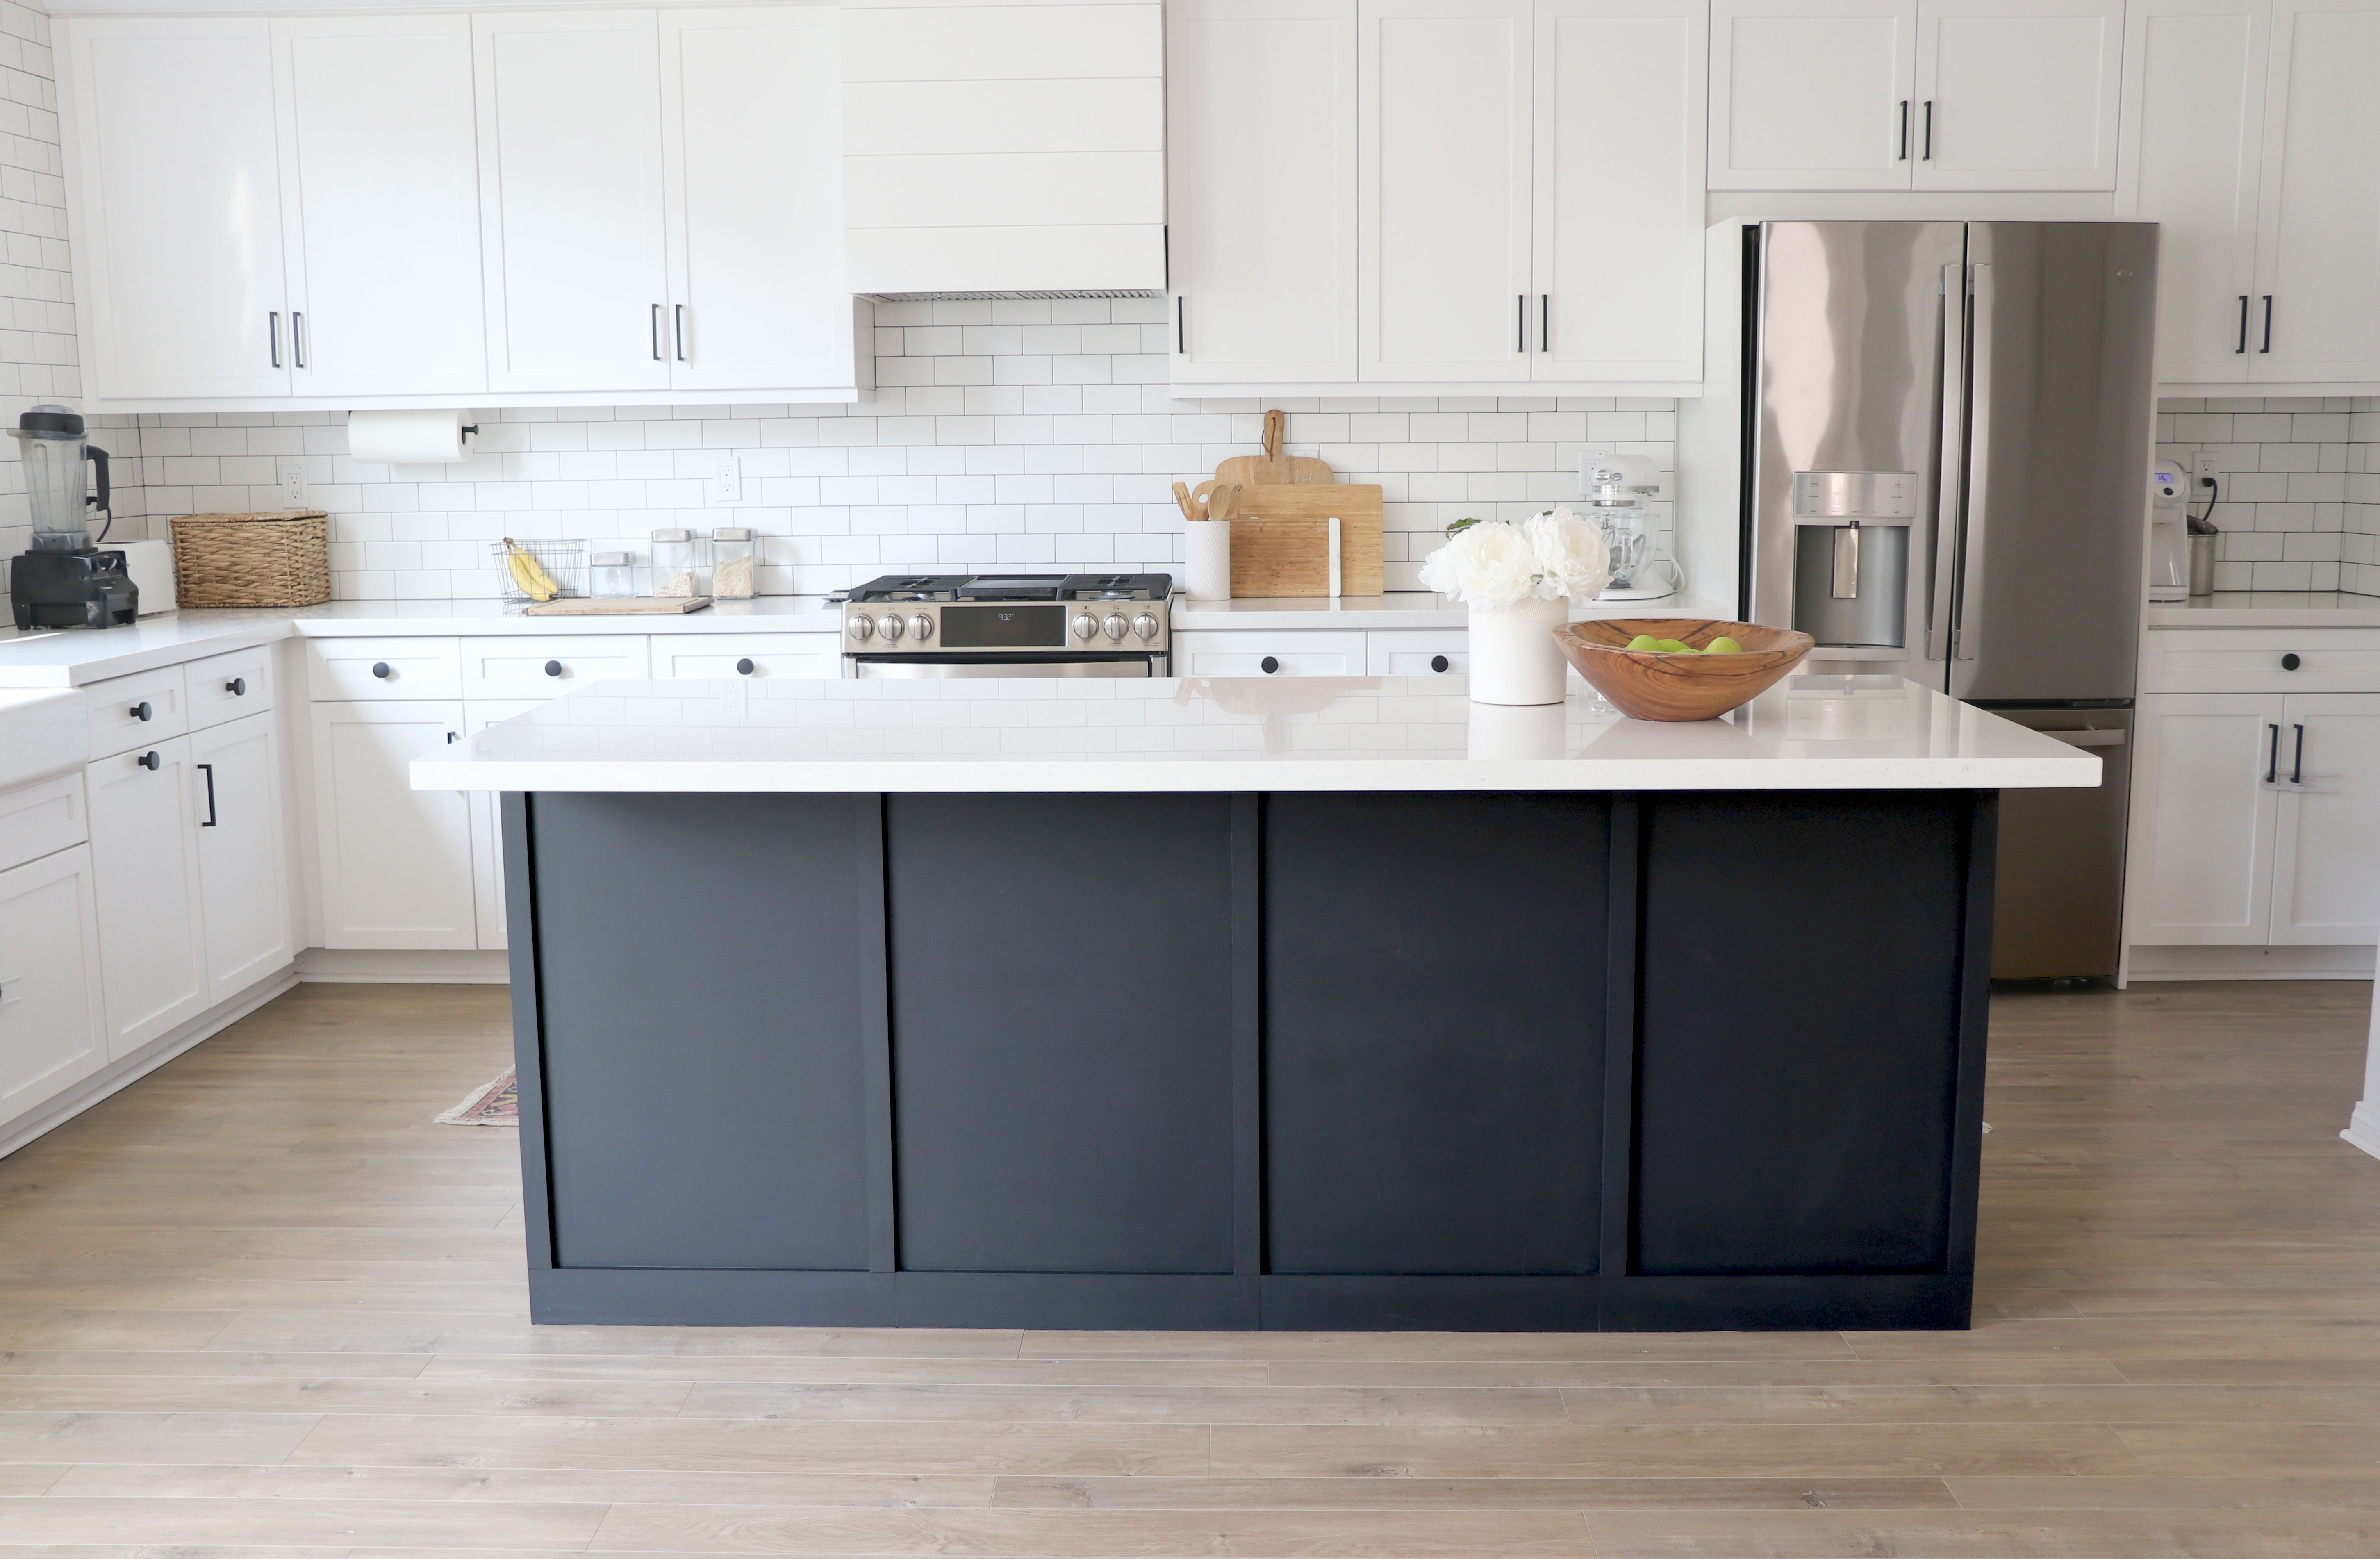 Board and Batten Trim Added To Kitchen Island, Eco-Friendly Dark Charcoal Paint